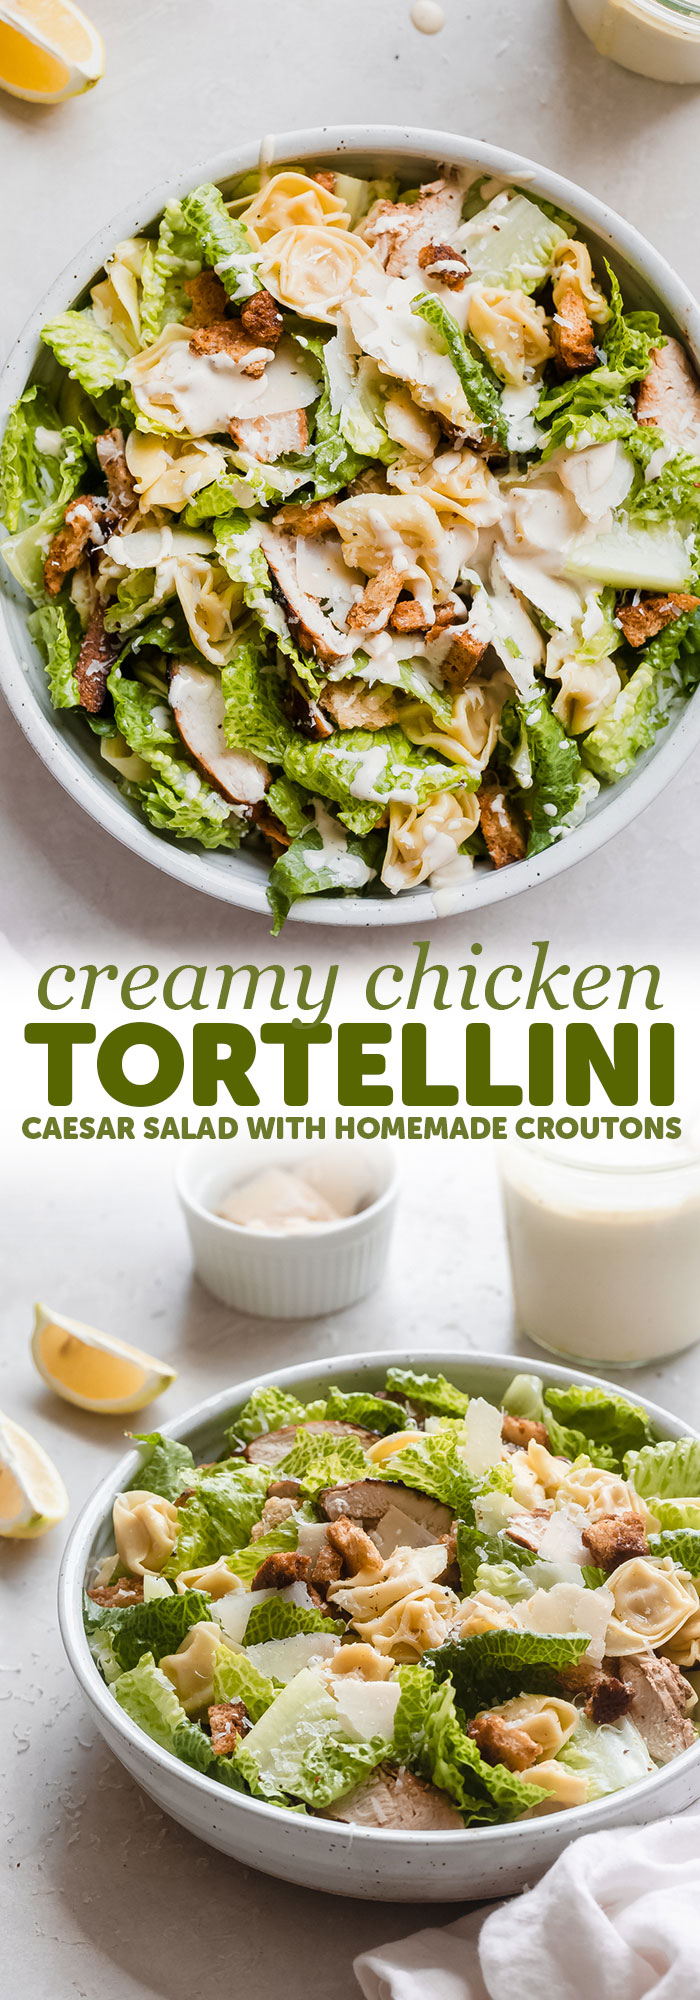 Creamy Chicken Tortellini Caesar Salad - Homemade croutons, homemade dressing, grilled chicken, fresh tortellini pasta, and crisp romaine! This is the best Caesar salad! #caesarsaladdressing #caesarsalad #tortellinicaesar #tortellinicaesarsalad #chickencaesarsalad #pastasalad | Littlespicejar.com